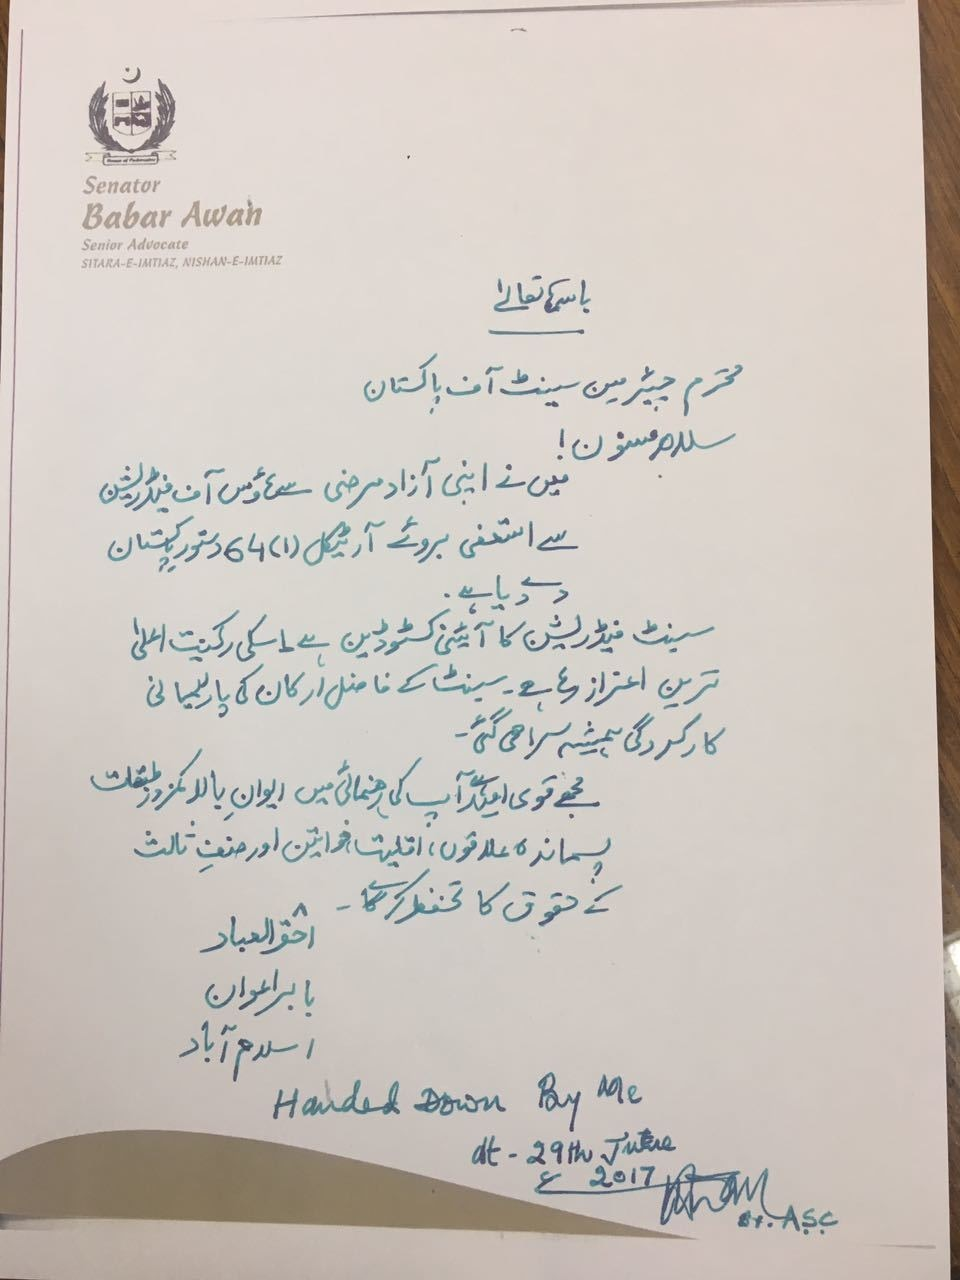 A copy of Senator Babar Awan's resignation.